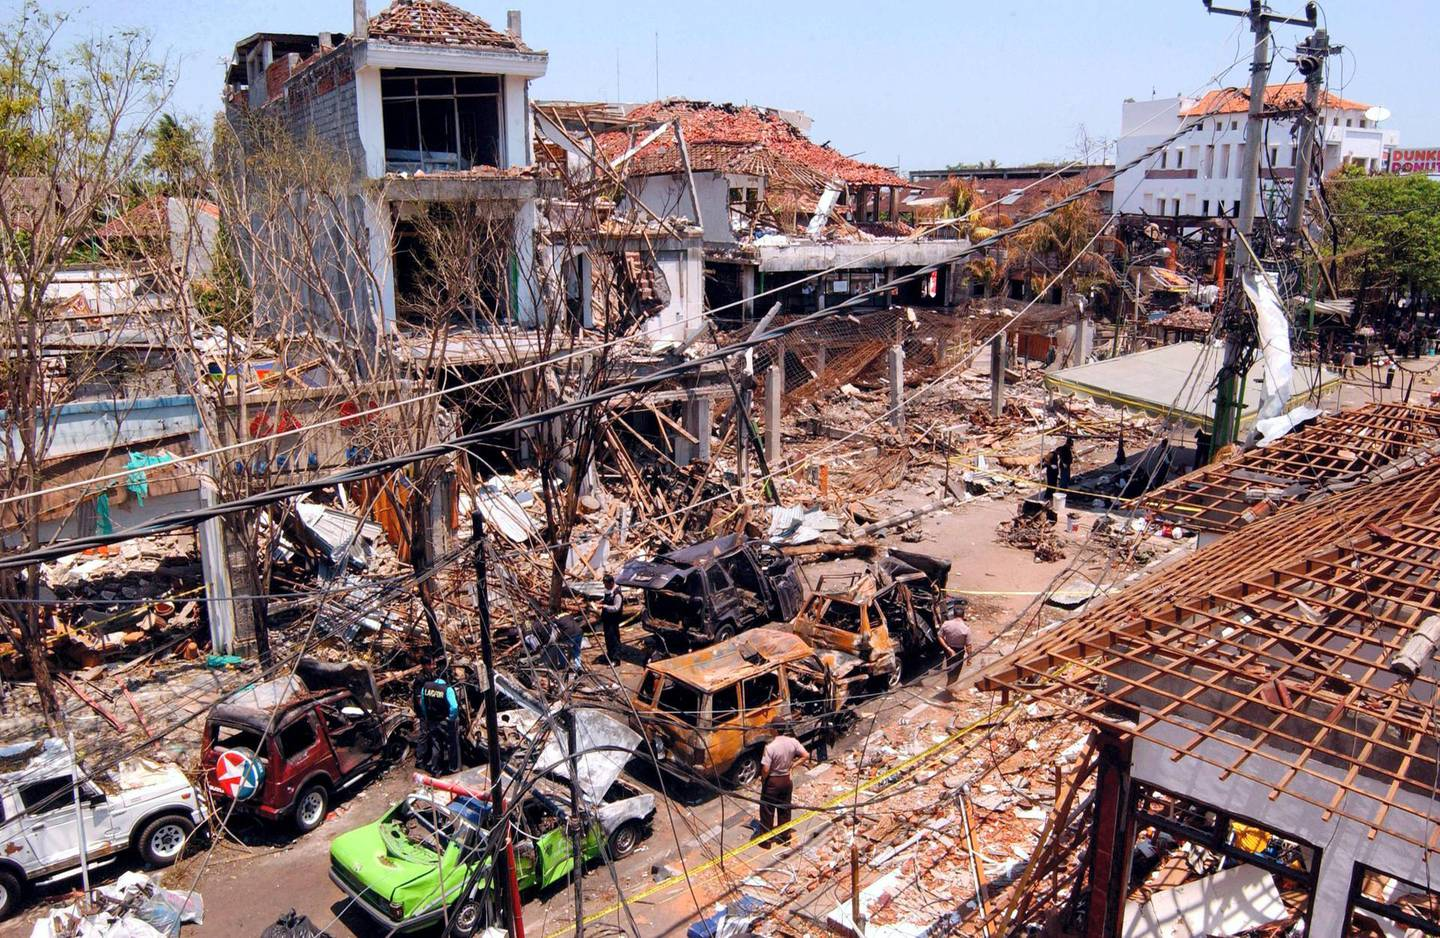 DENPASAR, BALI, INDONESIA - OCTOBER 16:  A view of the bomb blast site on October 16, 2002 in Denpasar, Bali, Indonesia. The blast occurred in the popular tourist area of Kuta on October 12, leaving more than 180 people dead and 132 injured, with the death toll expected to rise. (Photo by Edy Purnomo/Getty Images)